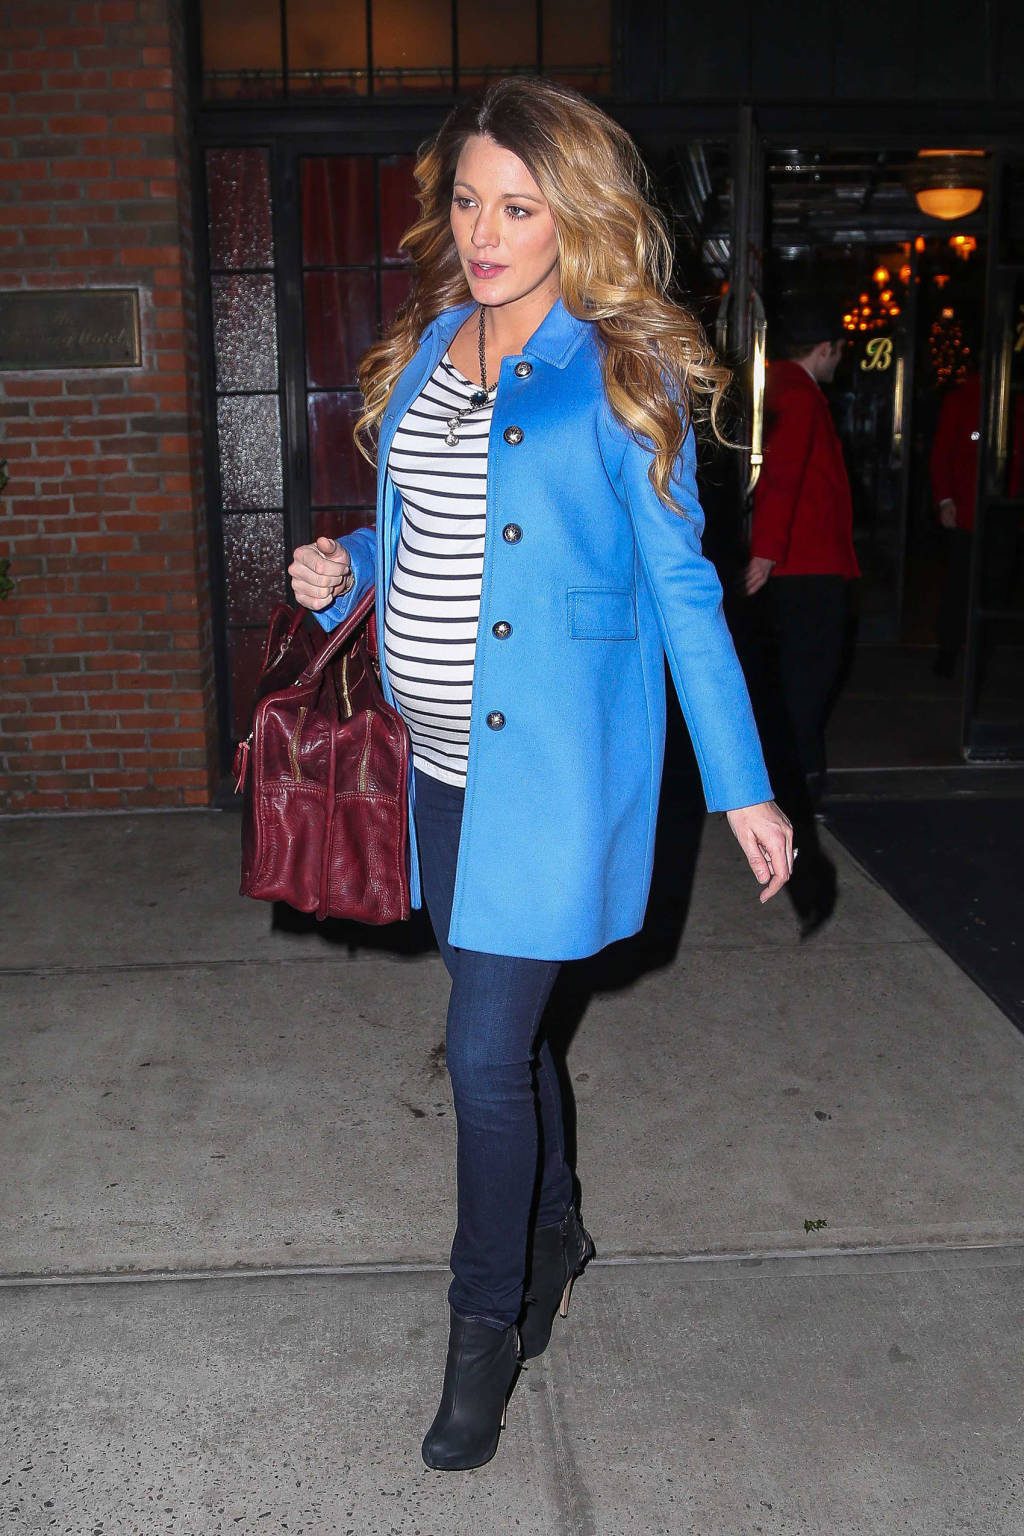 Turbo Blake Lively enceinte, on copie son look casual chic pour l'hiver  HW02